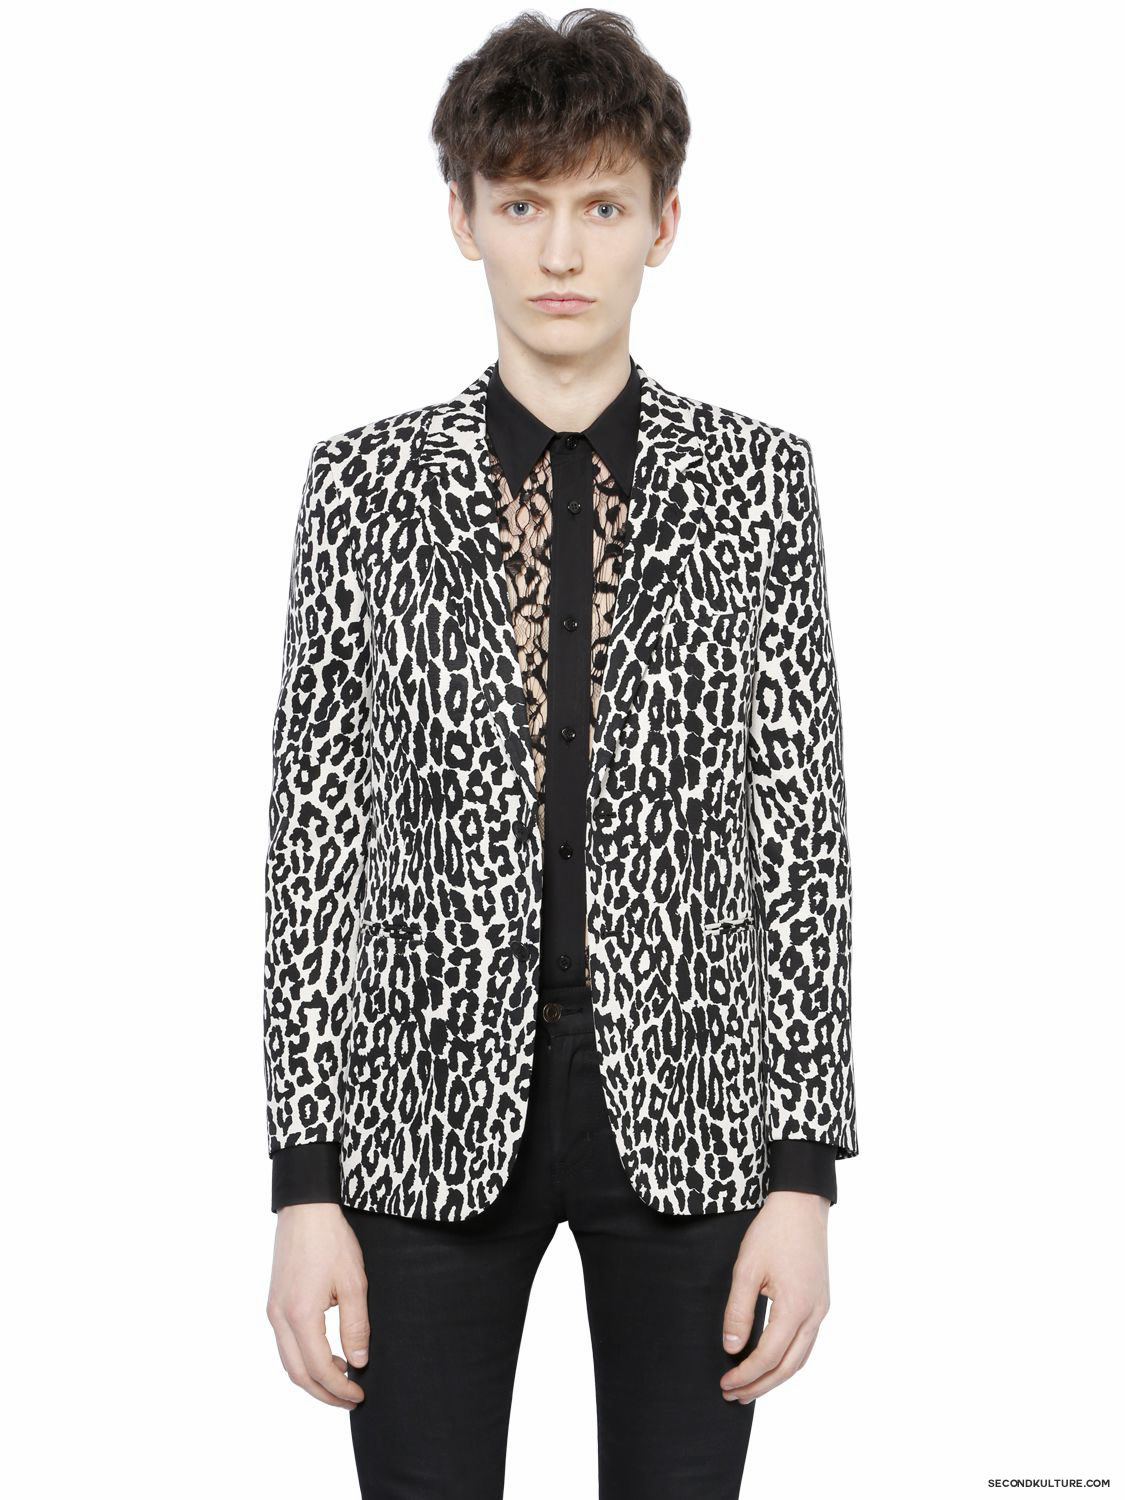 Saint-Laurent-White-Babycat-Print-Wool-Viscose-Faille-Jakcet-Fall-Winter-2015-1